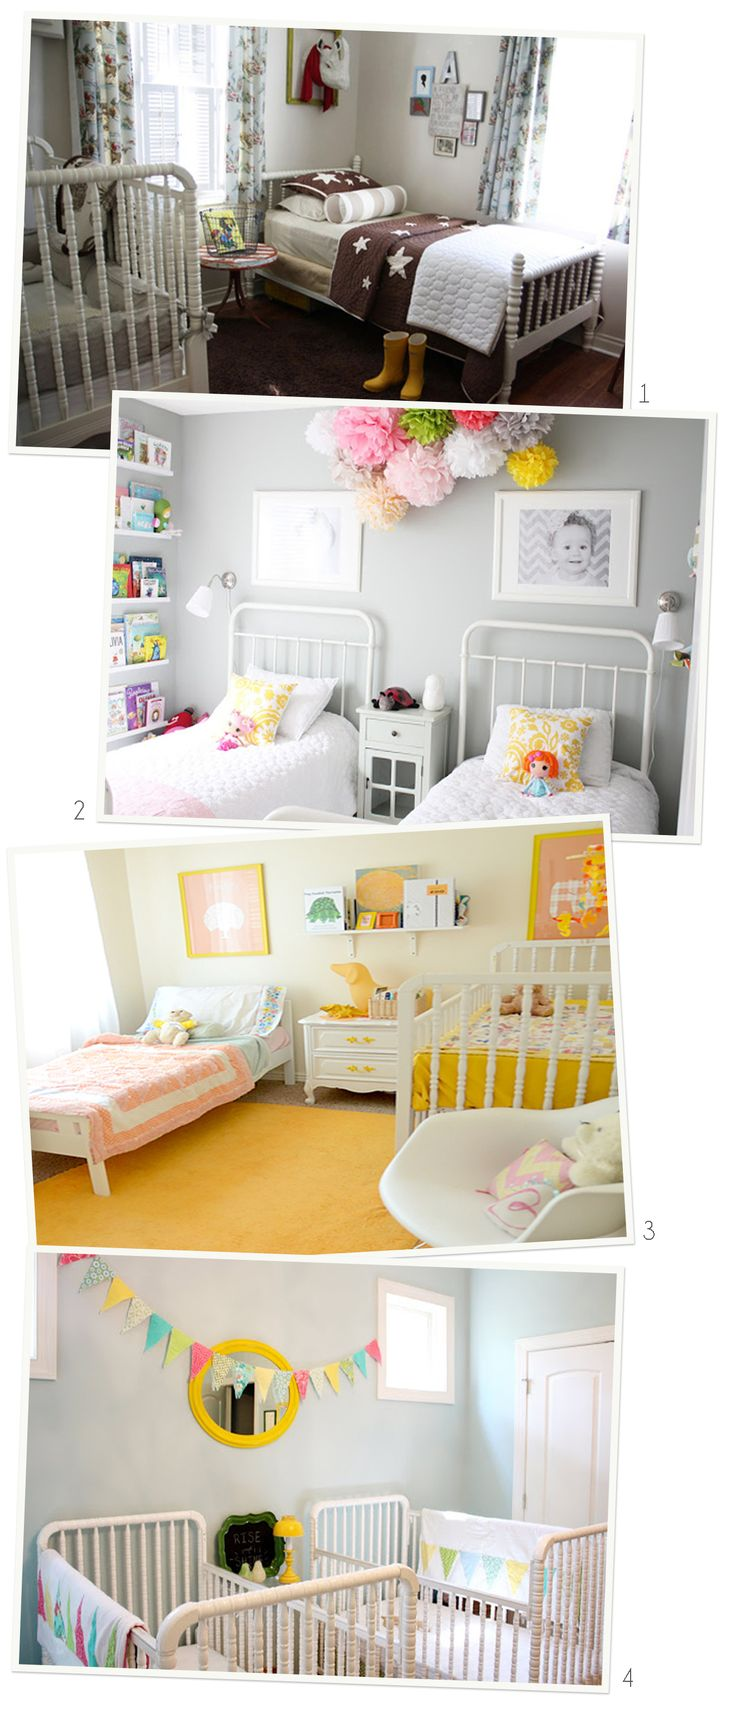 Pin By Graham Bunting On Nursery Ideas Stair Box Room: 382 Best Shared Baby Room Images On Pinterest